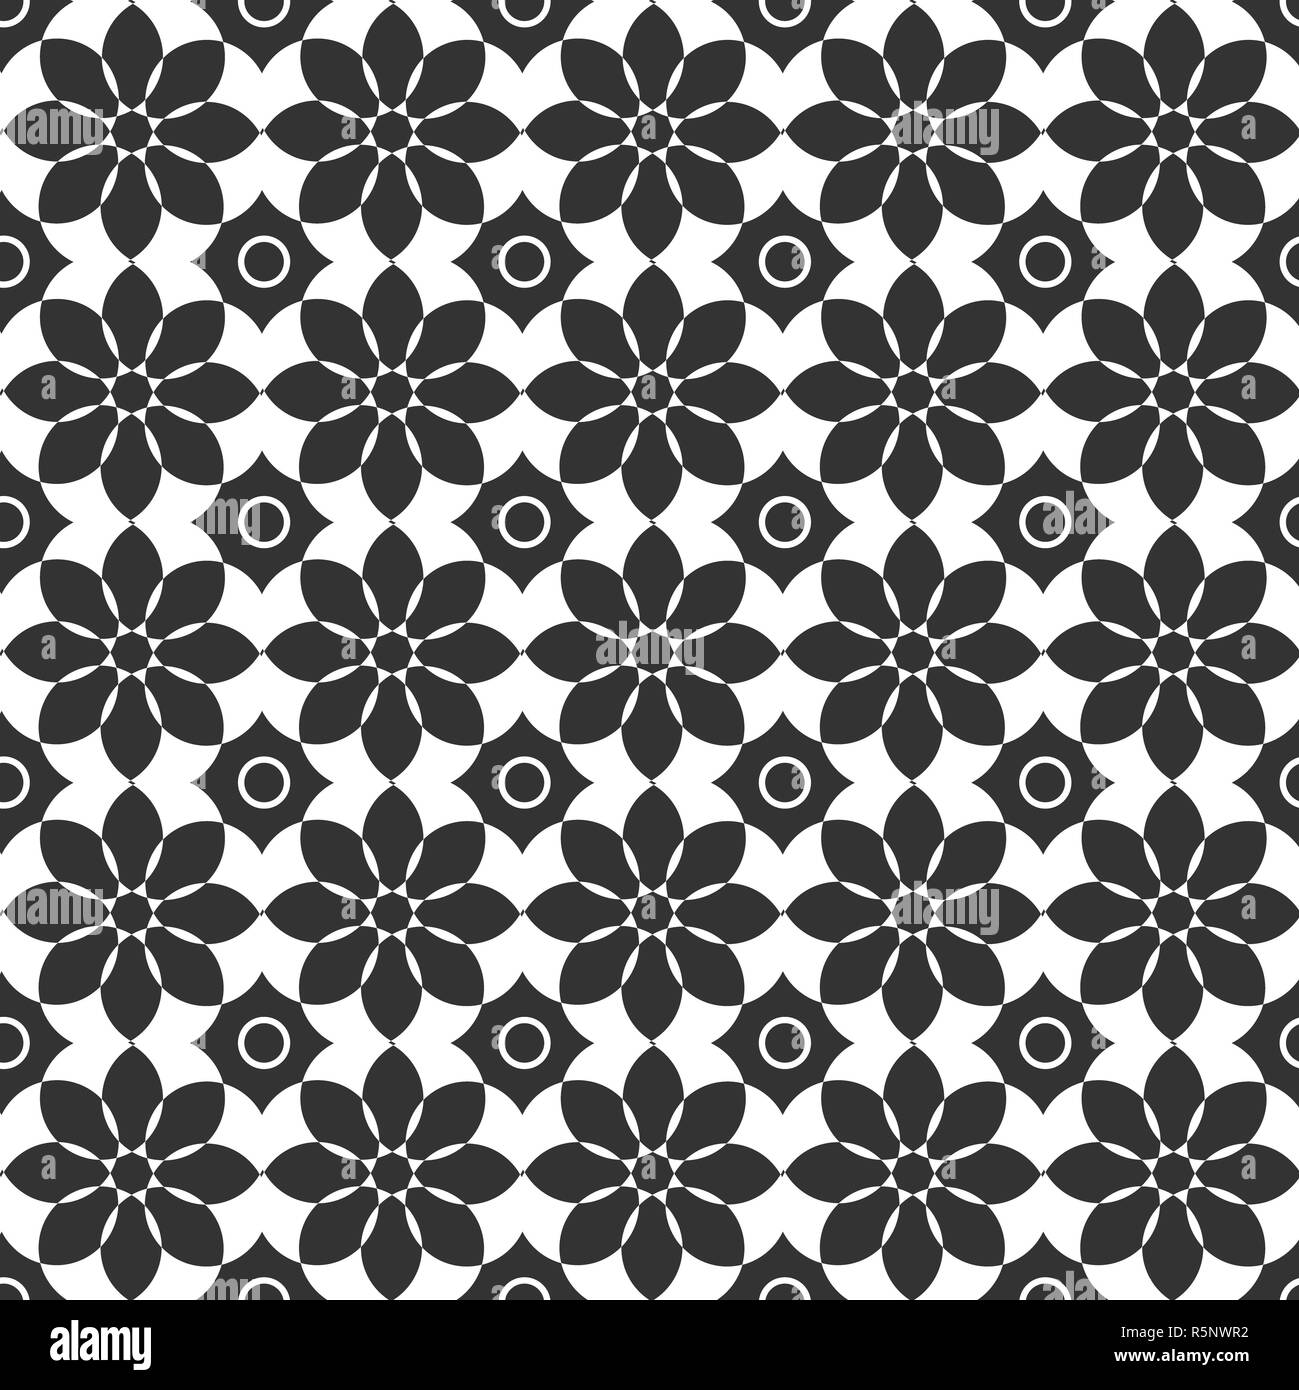 Classic dark and light seamless floral ornament patterns  Endless